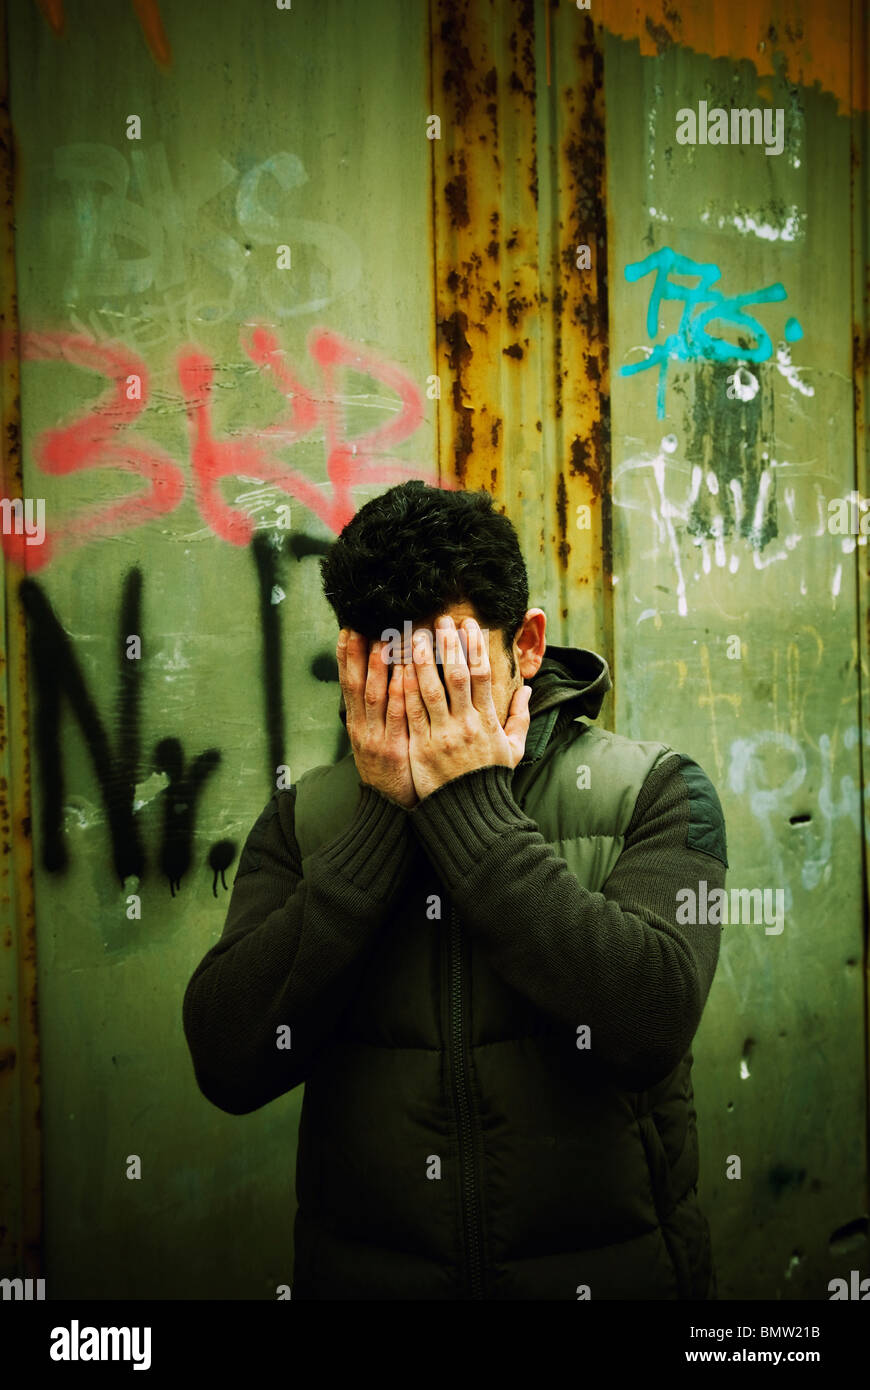 Man hiding face in hands outdoors Berlin Germany - Stock Image